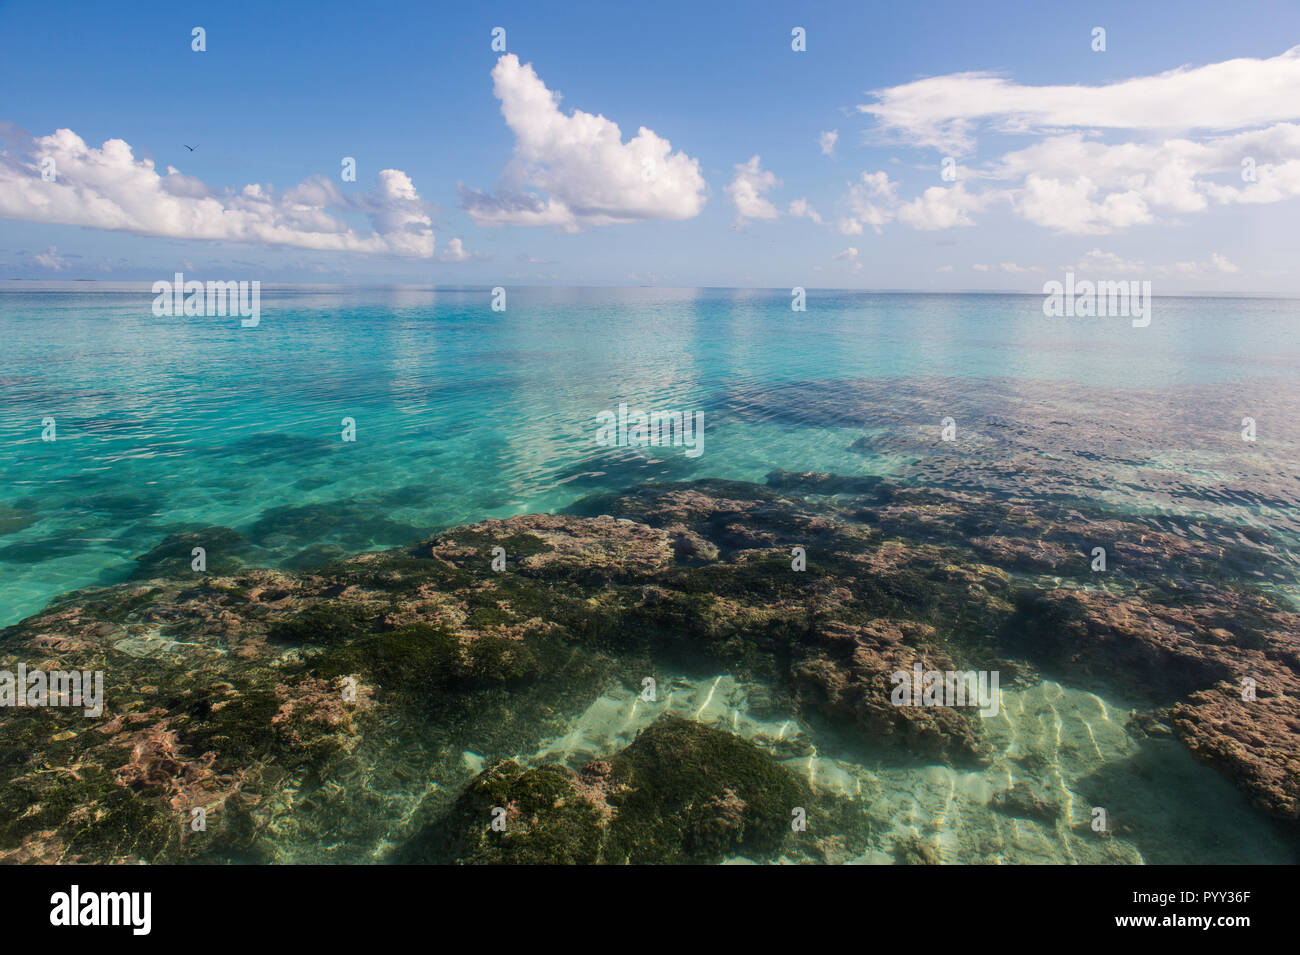 Clear waters, Tikehau, Tuamotu Archipelago, French Polynesia - Stock Image